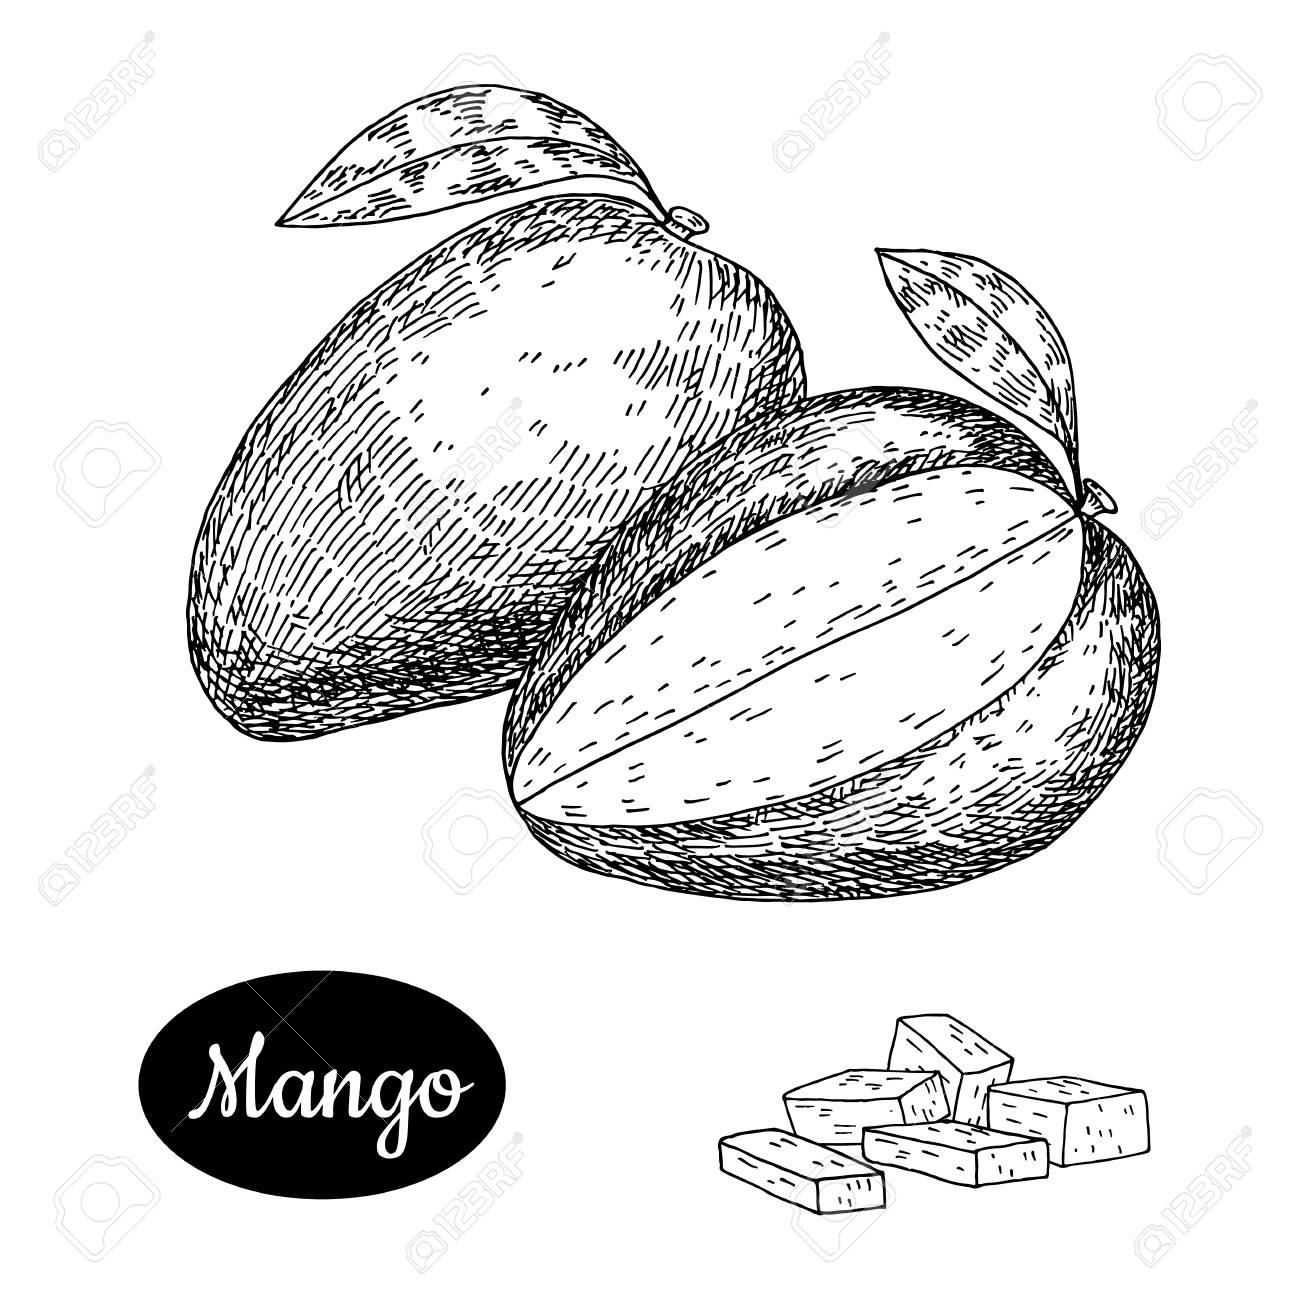 Fresh mango hand drawn sketch style tropical summer fruit vector illustration isolated drawing on